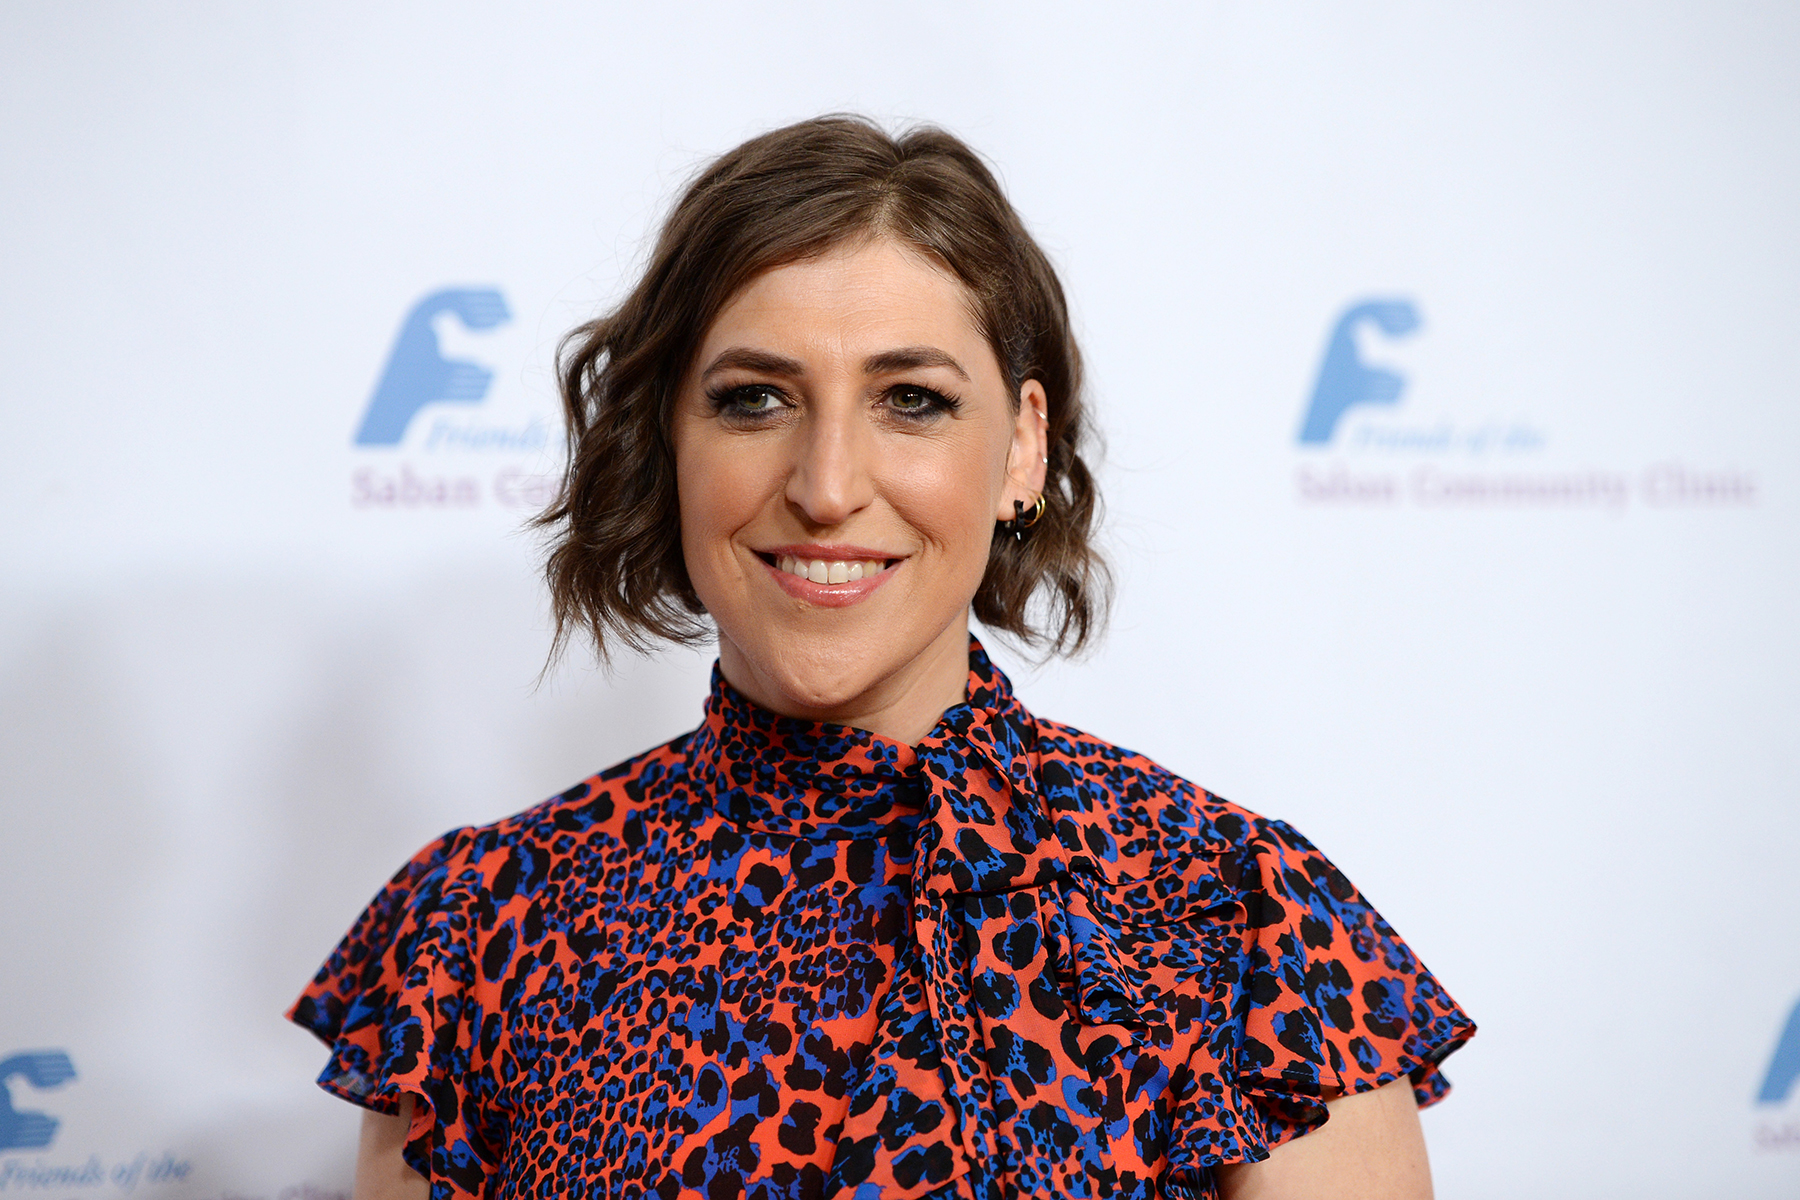 BEVERLY HILLS, CALIFORNIA - NOVEMBER 18: Actress Mayim Bialik arrives at the Saban Community Clinic's 43rd Annual Dinner Gala at The Beverly Hilton Hotel on November 18, 2019 in Beverly Hills, California. (Photo by Amanda Edwards/Getty Images)